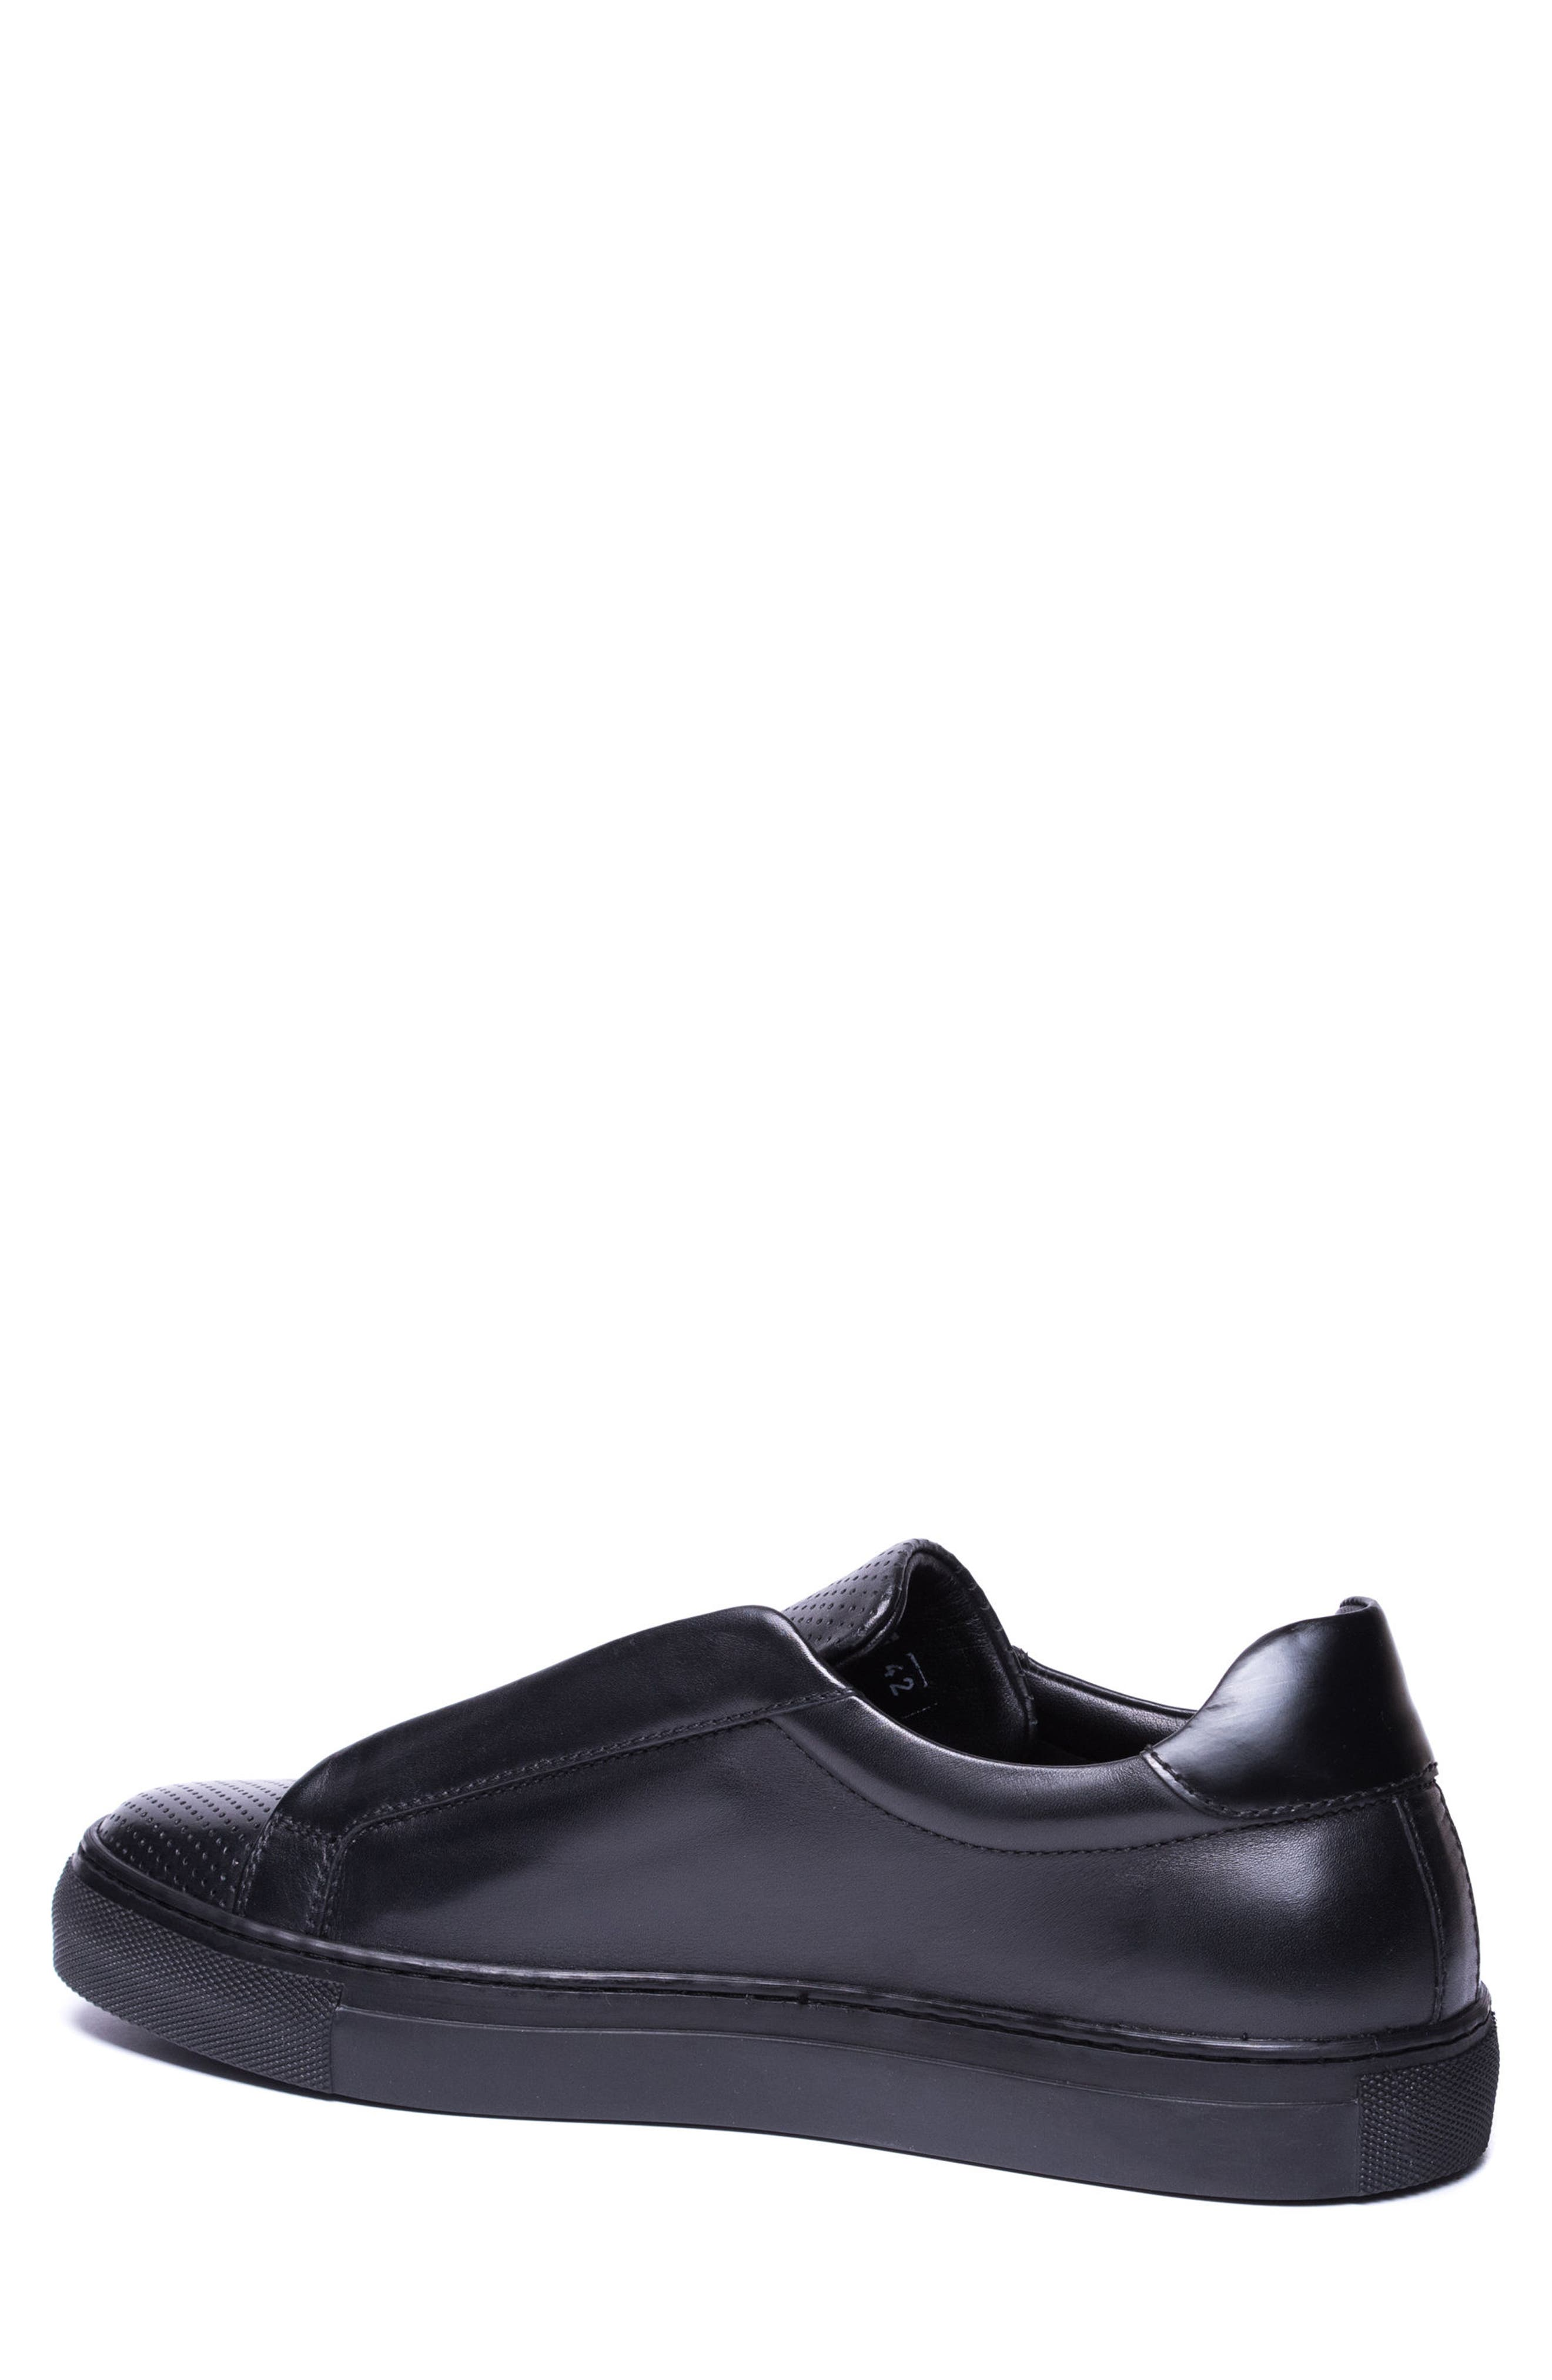 Mane Laceless Perforated Sneaker,                             Alternate thumbnail 2, color,                             Black Leather